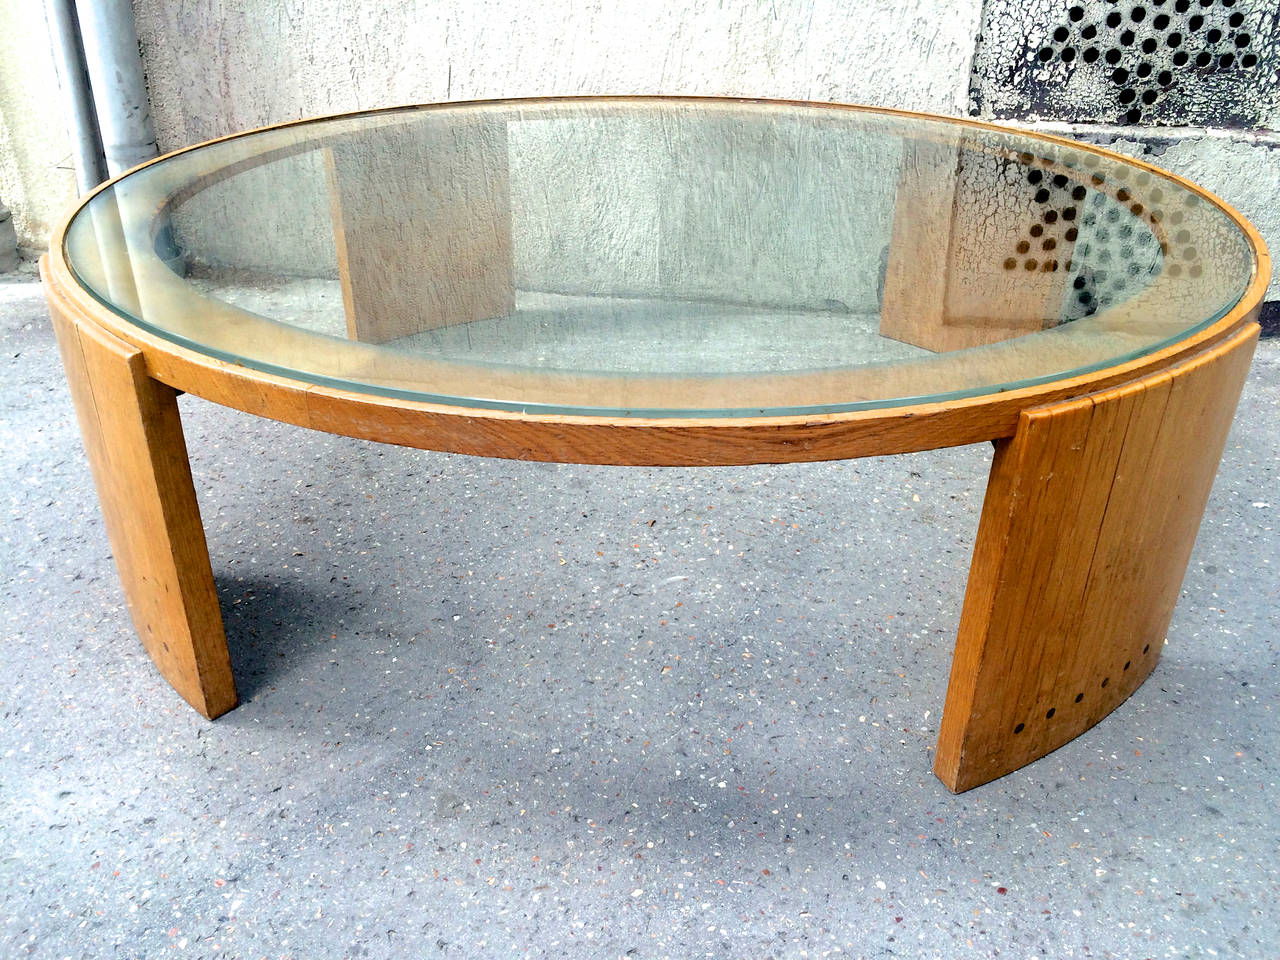 Jacques adnet very large round coffee table in oak and glass top image 3 Large glass coffee table